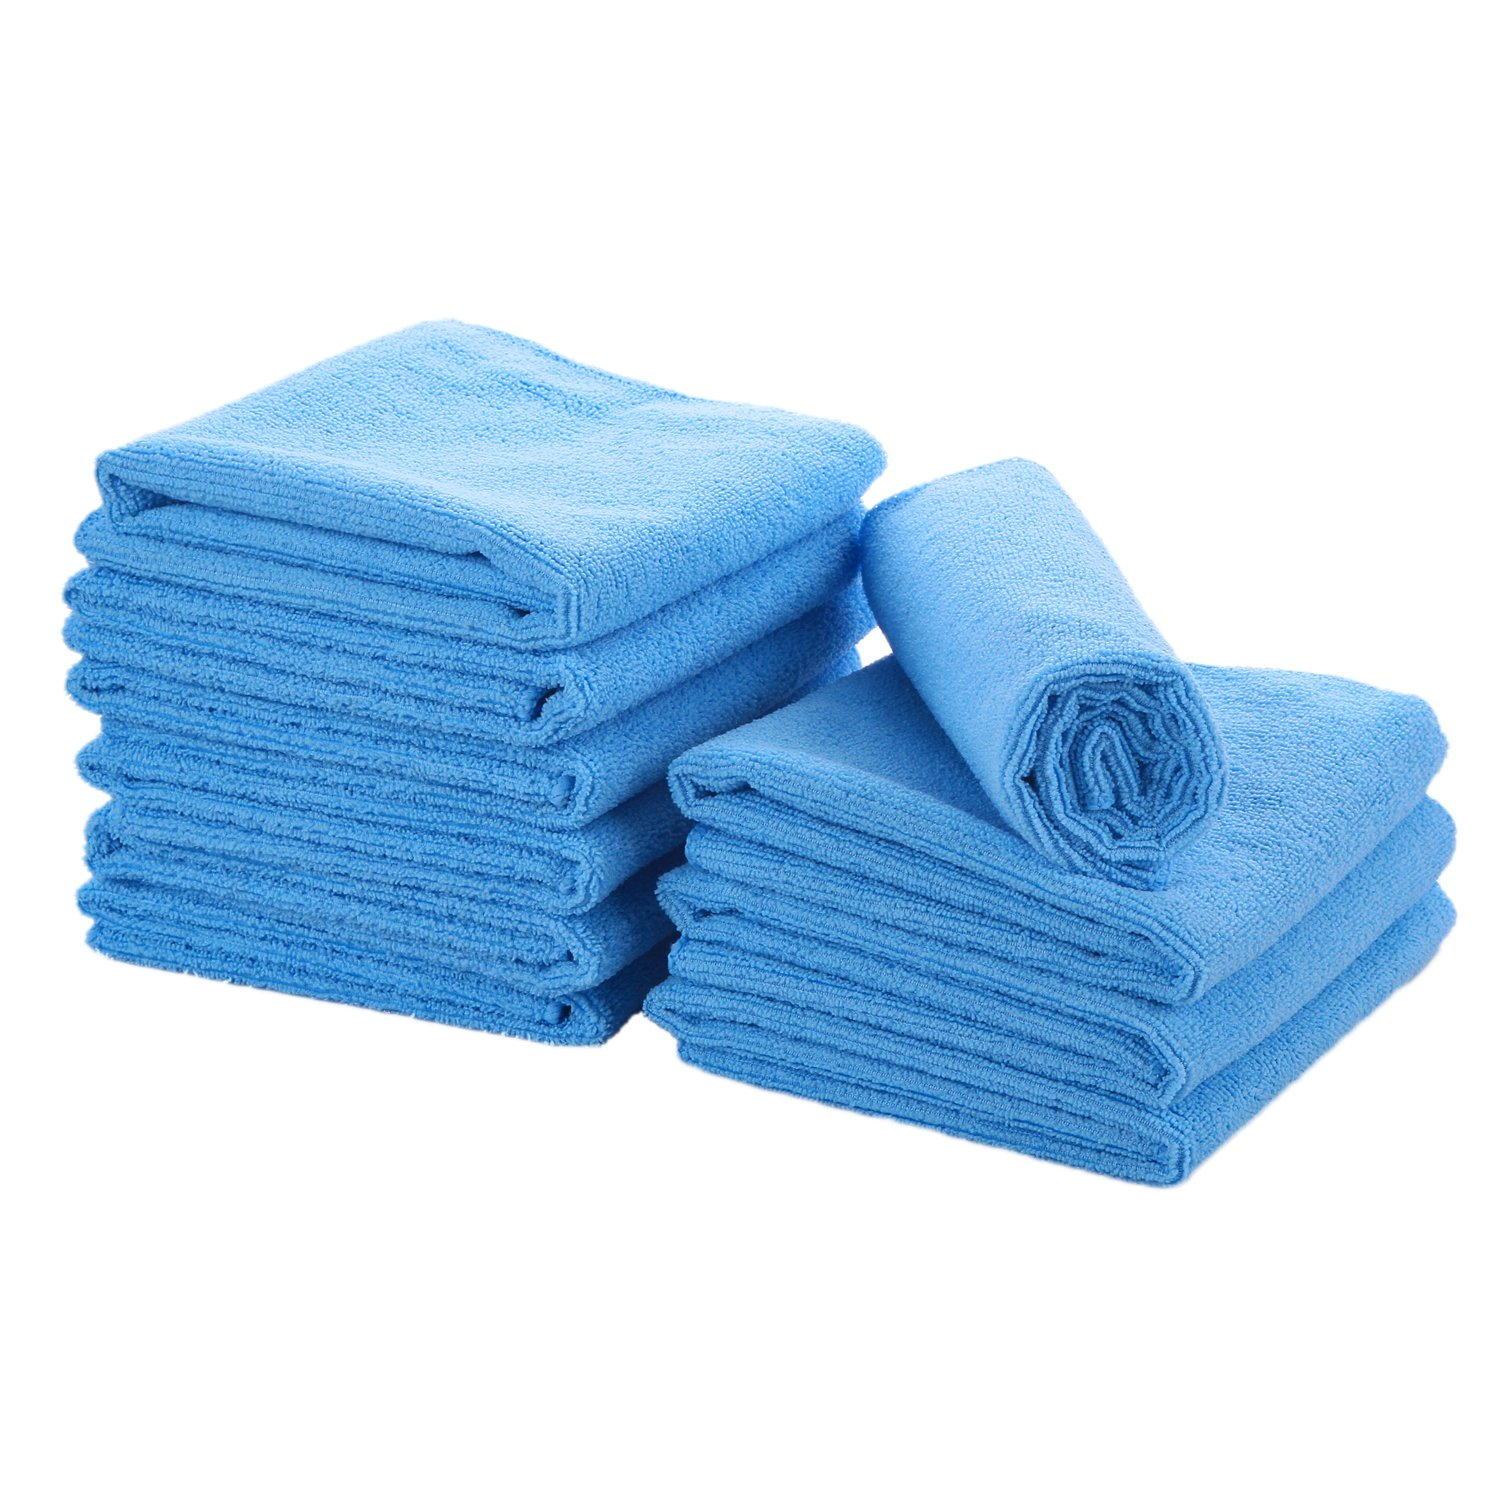 Business & Industrial Clean All White 50 Pack Super Strong Absorbent General Everyday Cleaning Cloths